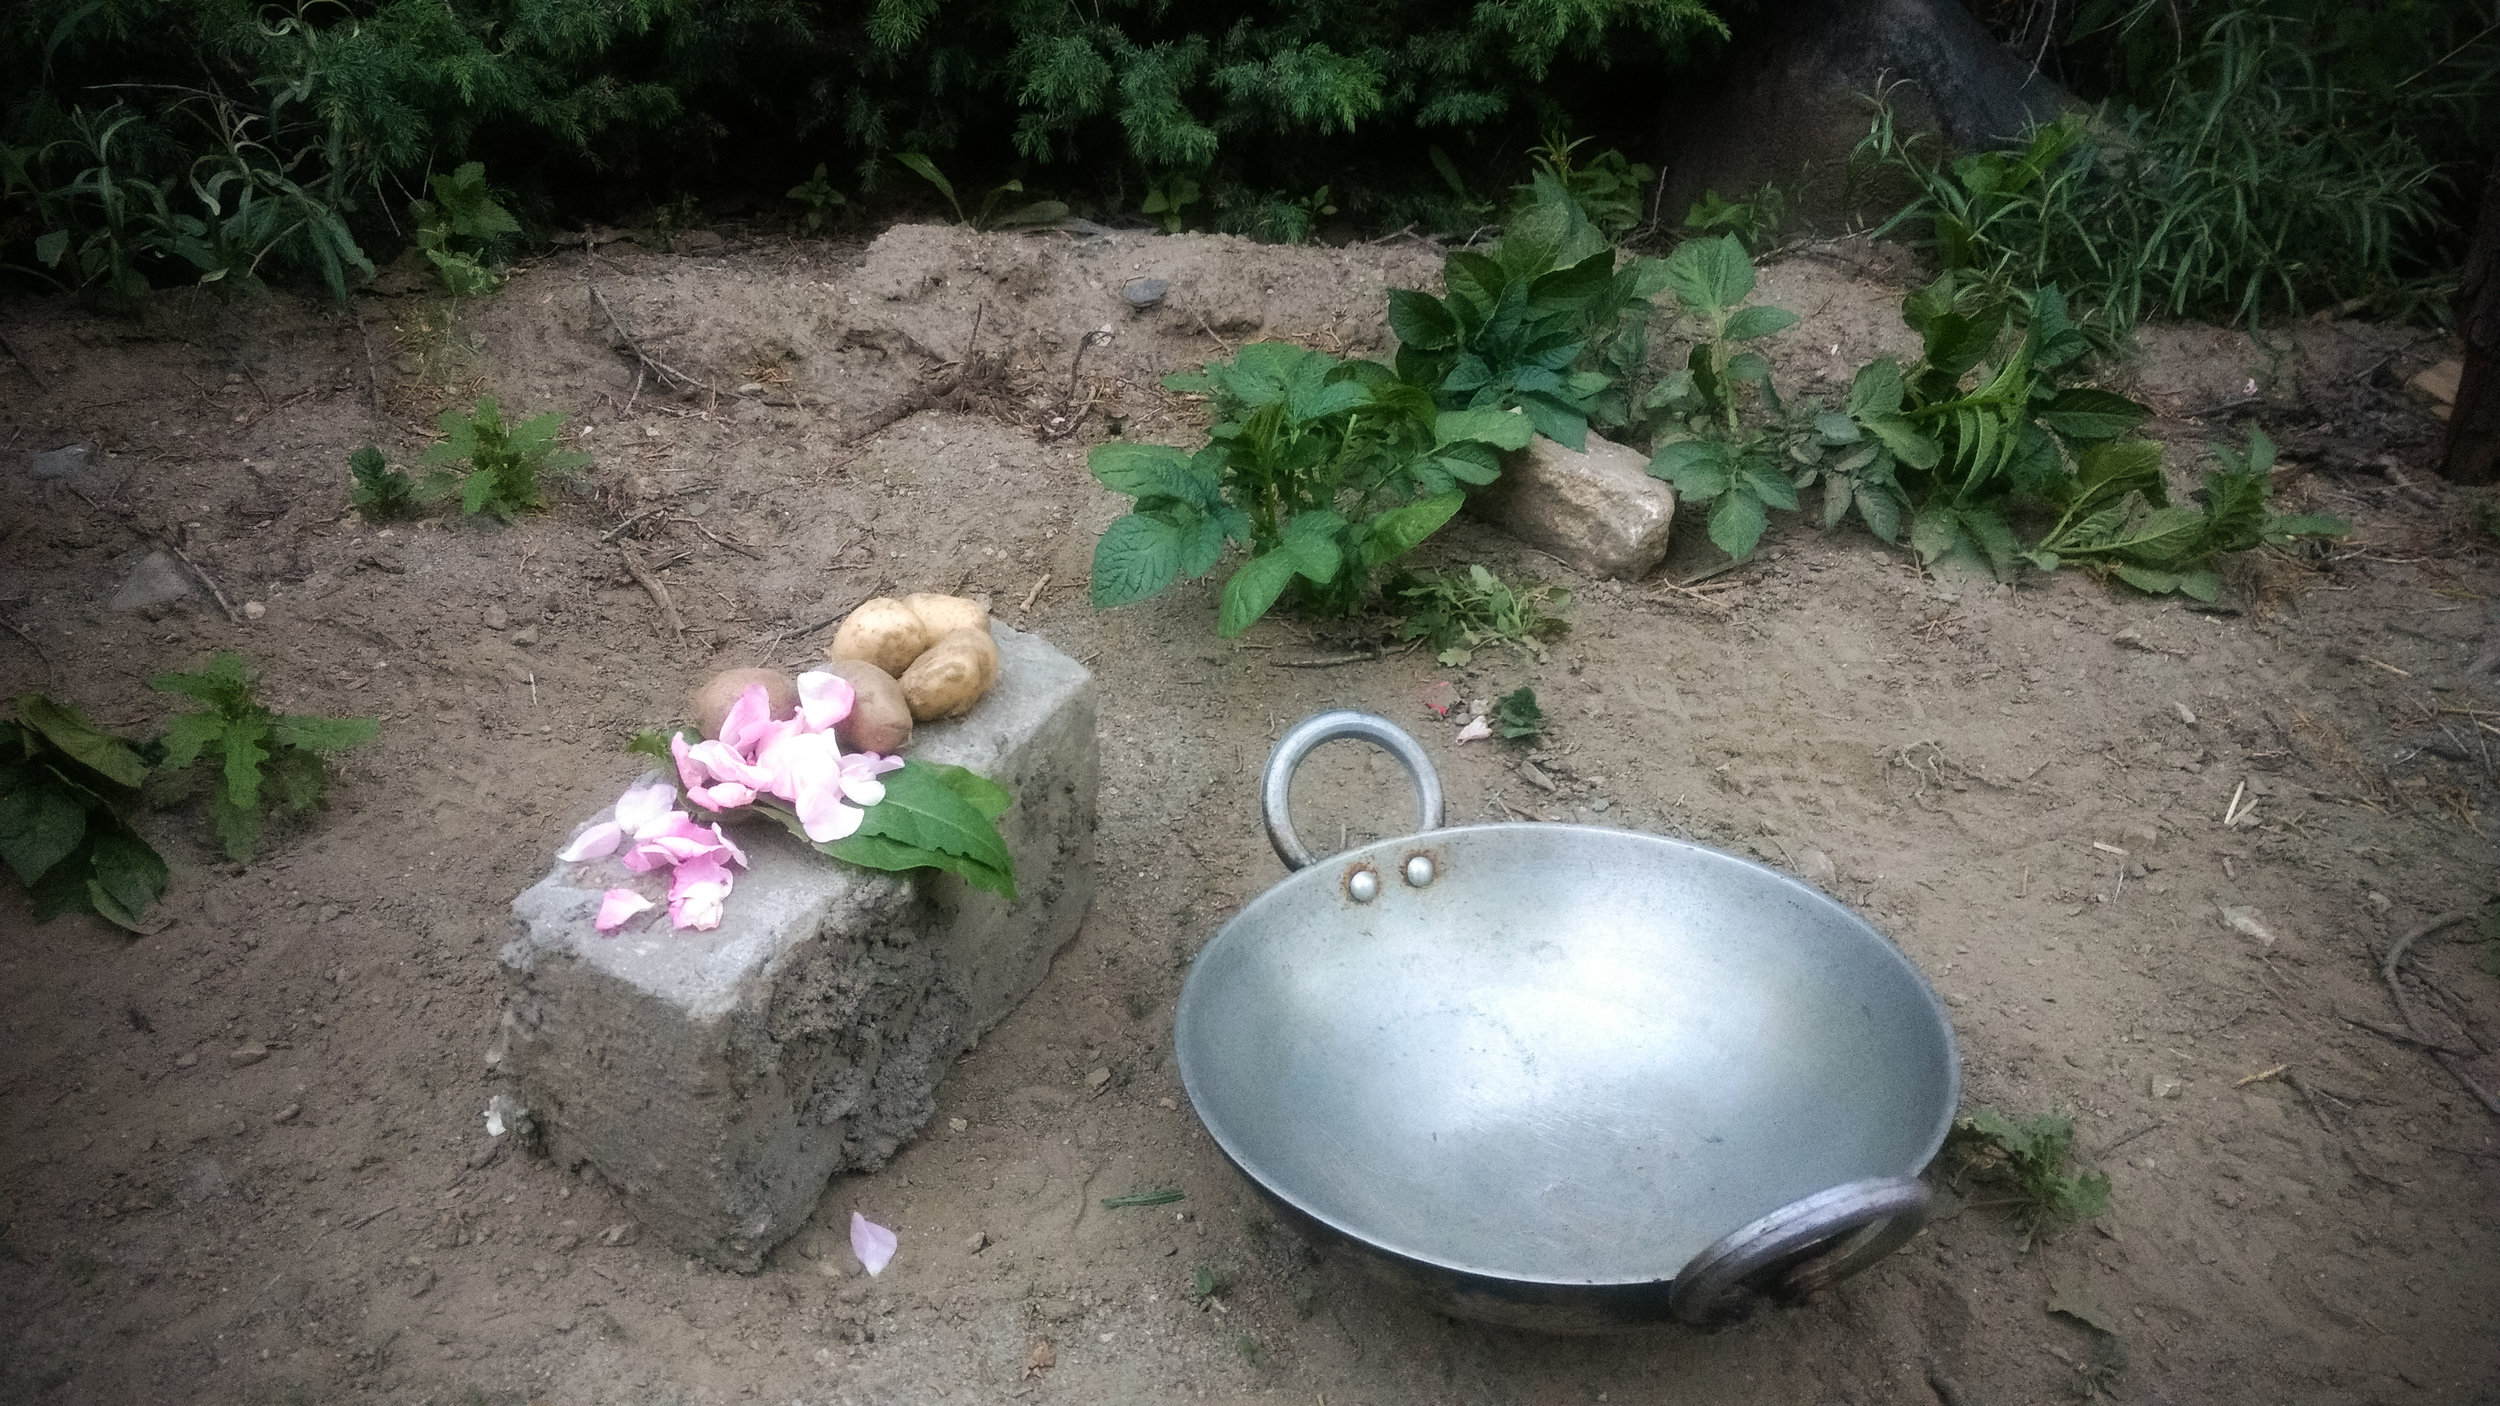 Wild rose and foraged potatoes for khichdi.